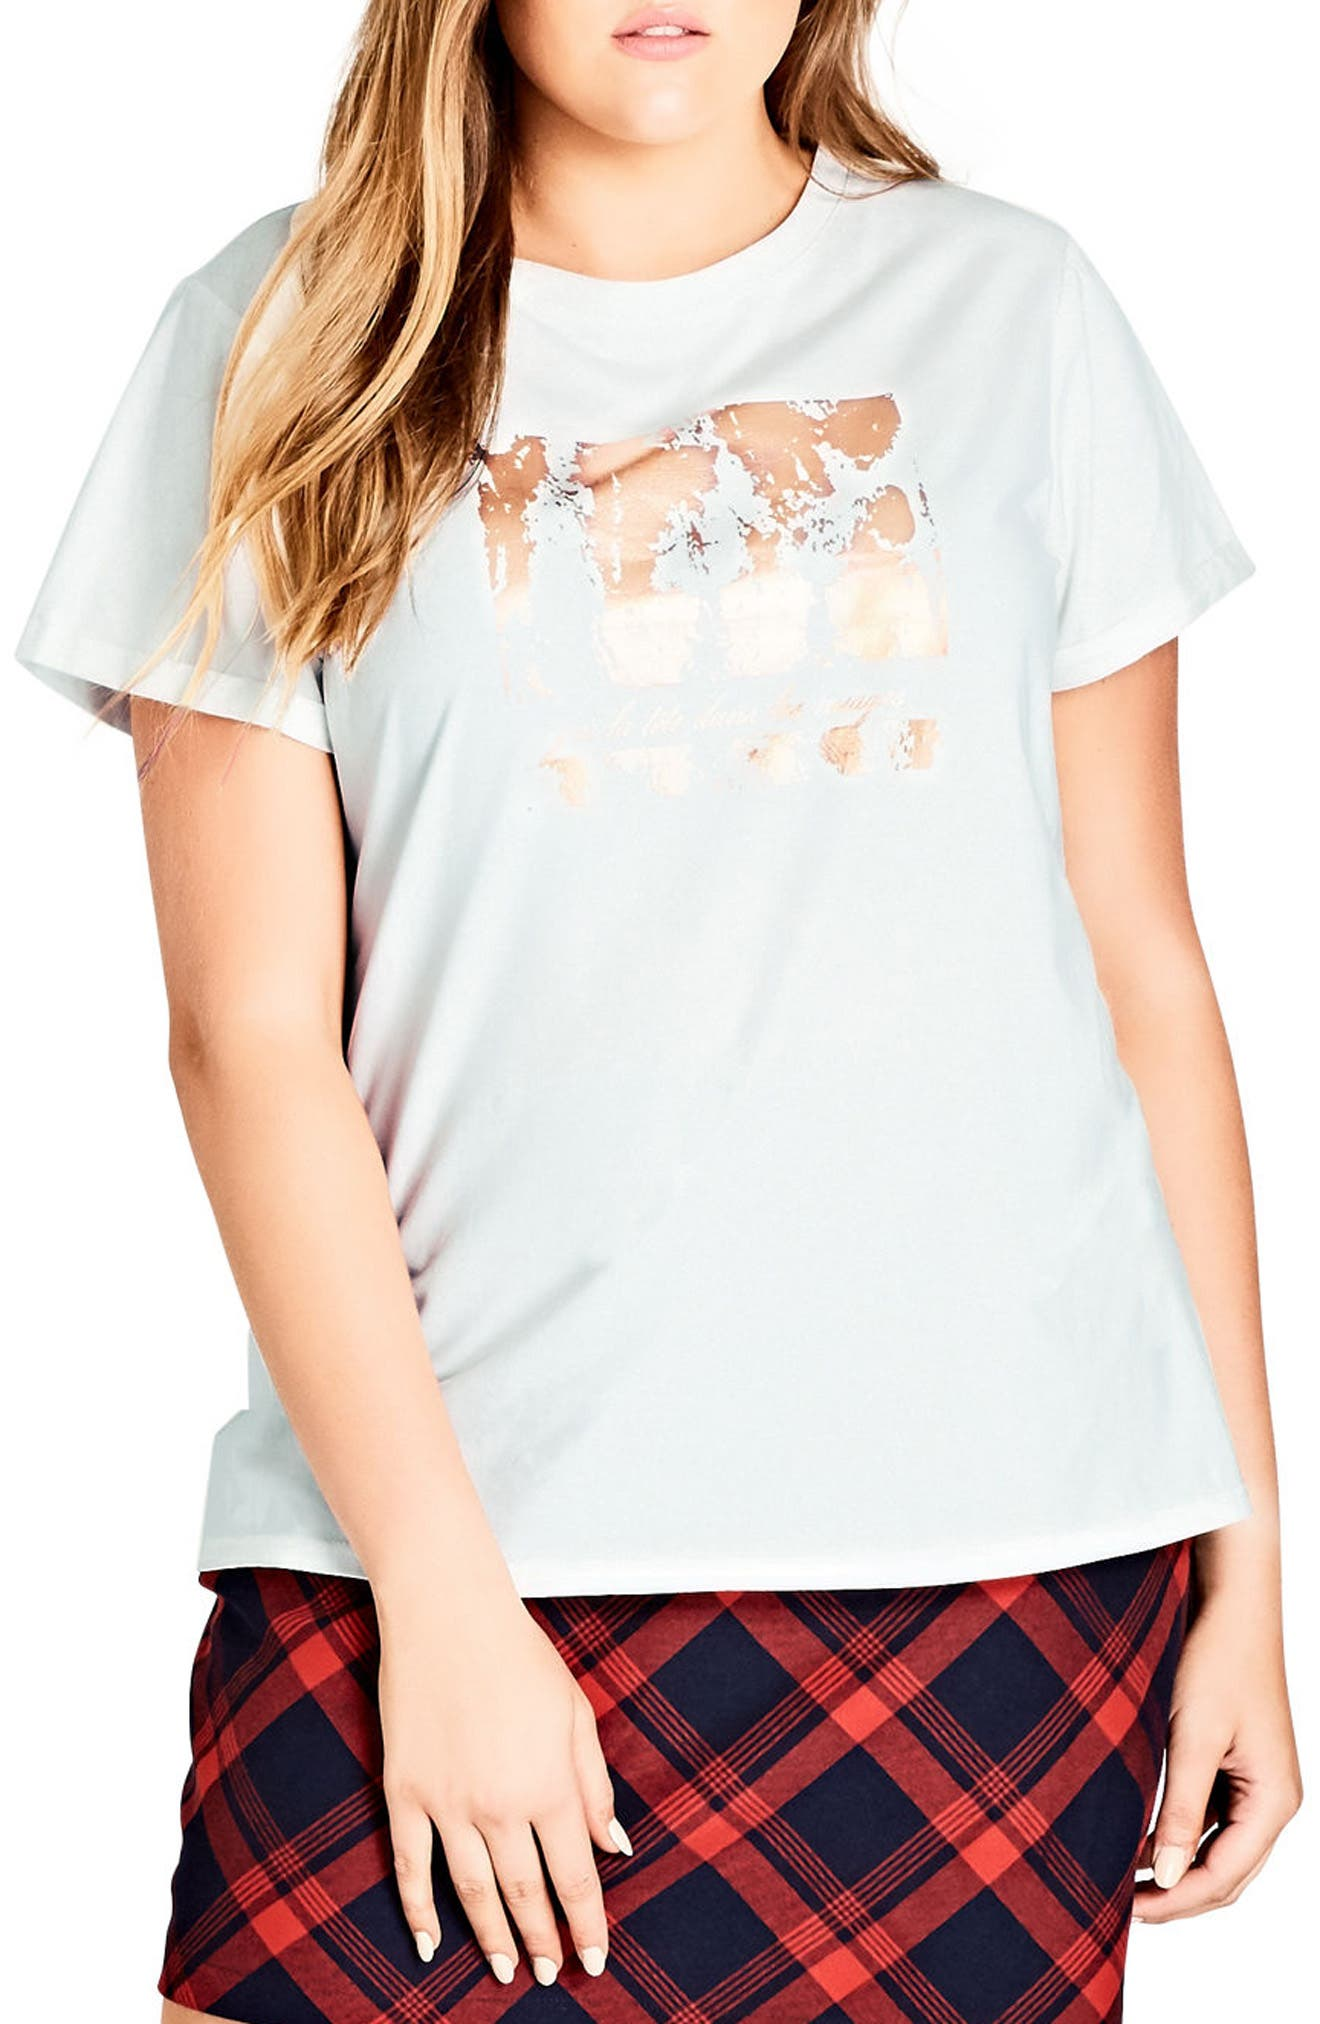 Alternate Image 1 Selected - City Chic Clouds Tee (Plus Size)